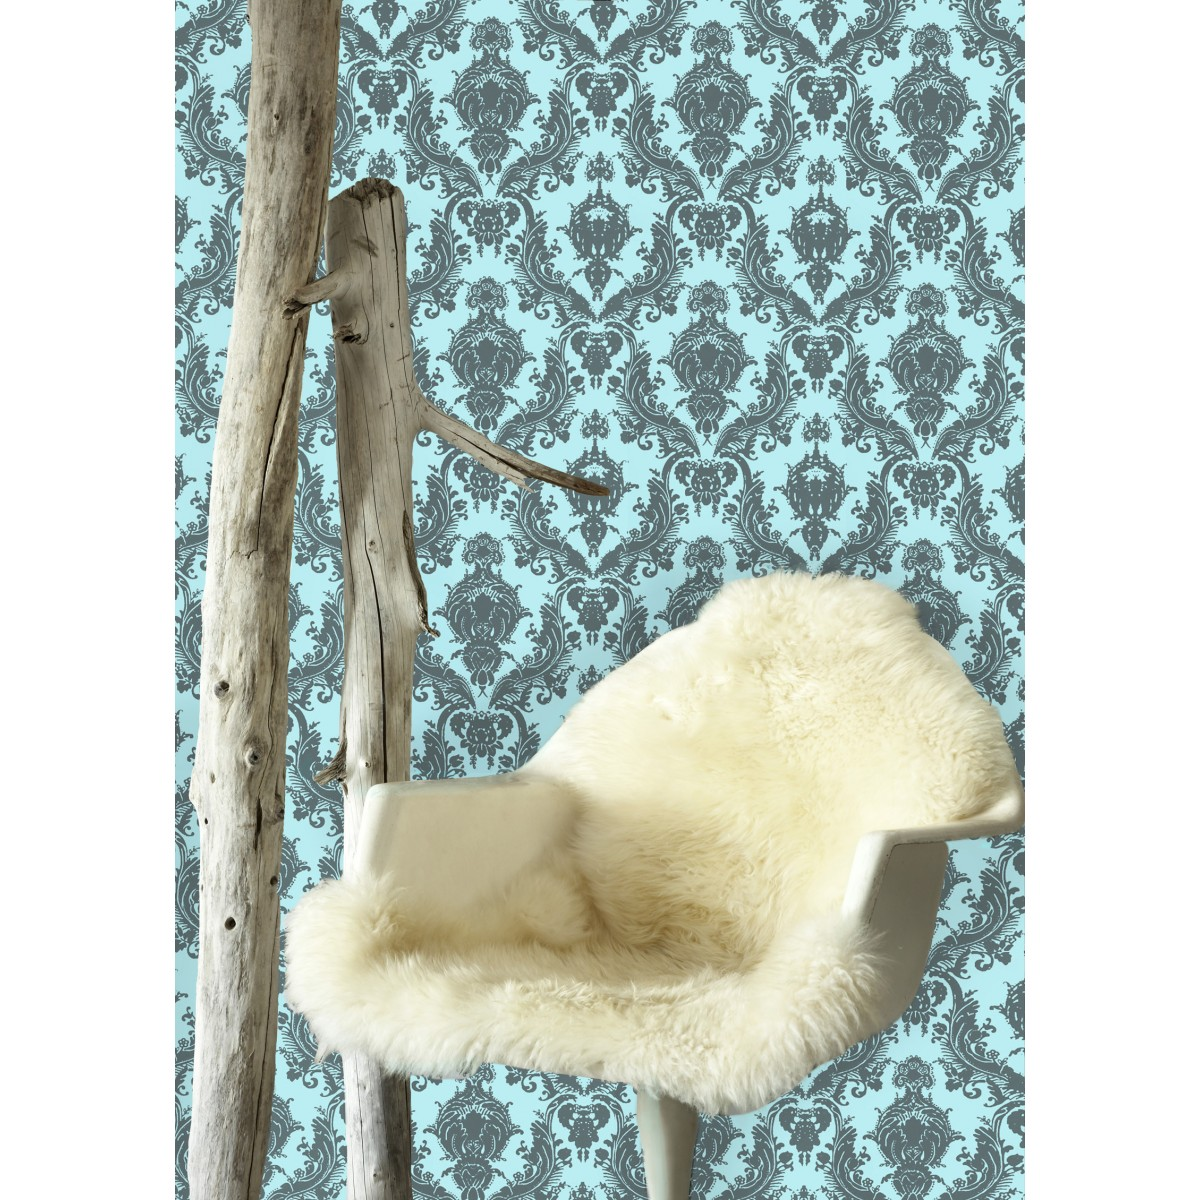 wonderful Tempaper Wallpaper in damsel aqua grey for wall decor ideas